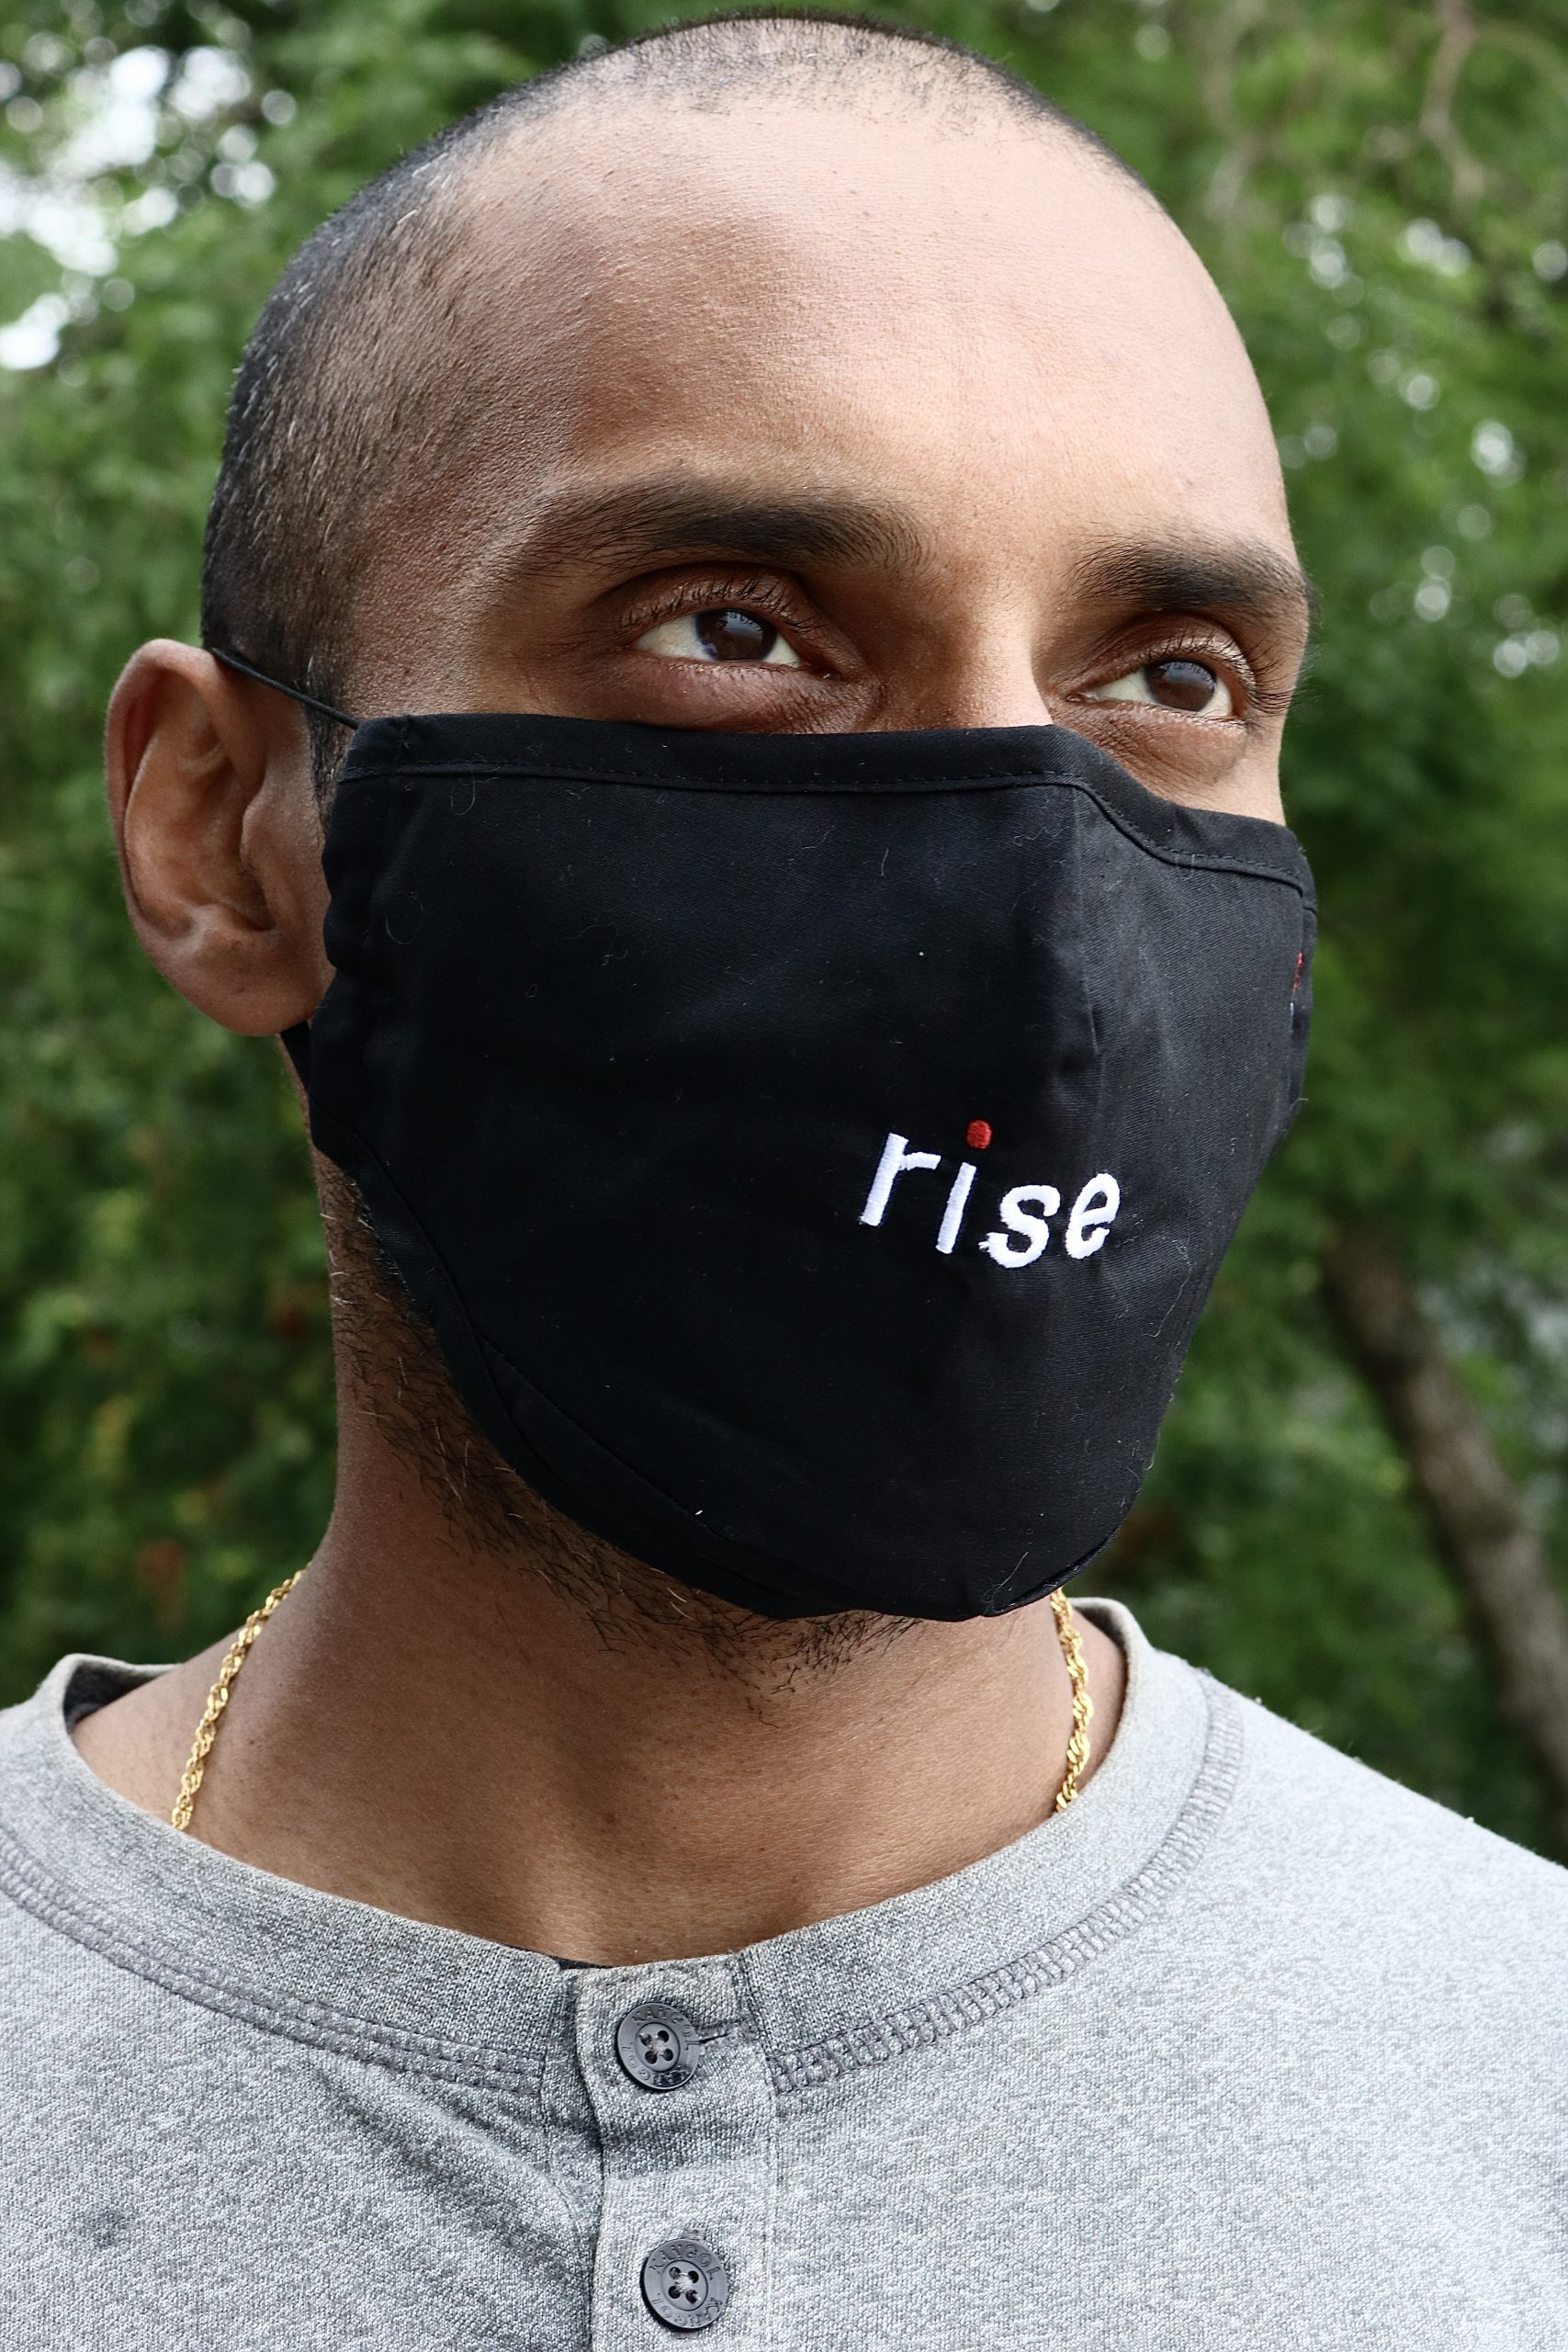 man wearing black mask with the word rise in white